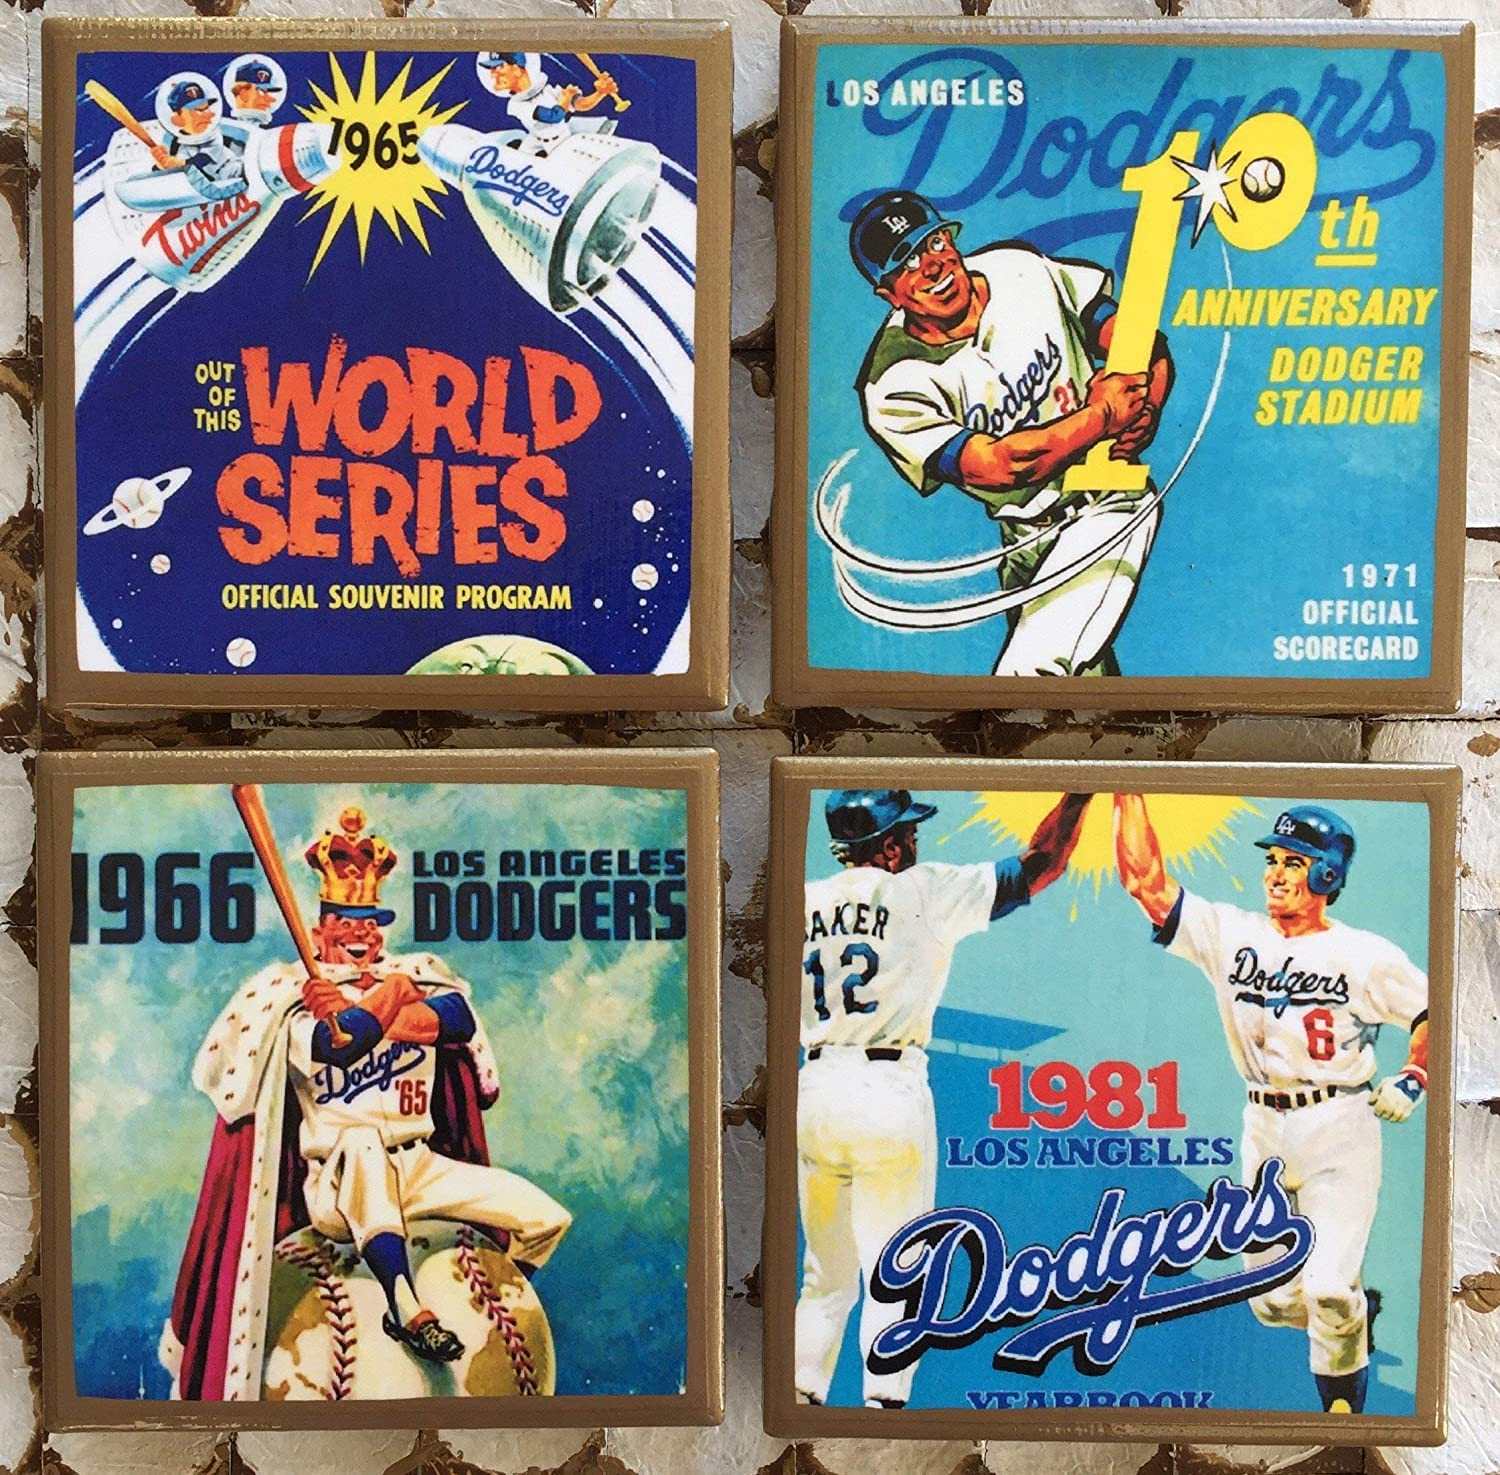 Vintage LA baseball program cover coasters with gold trim